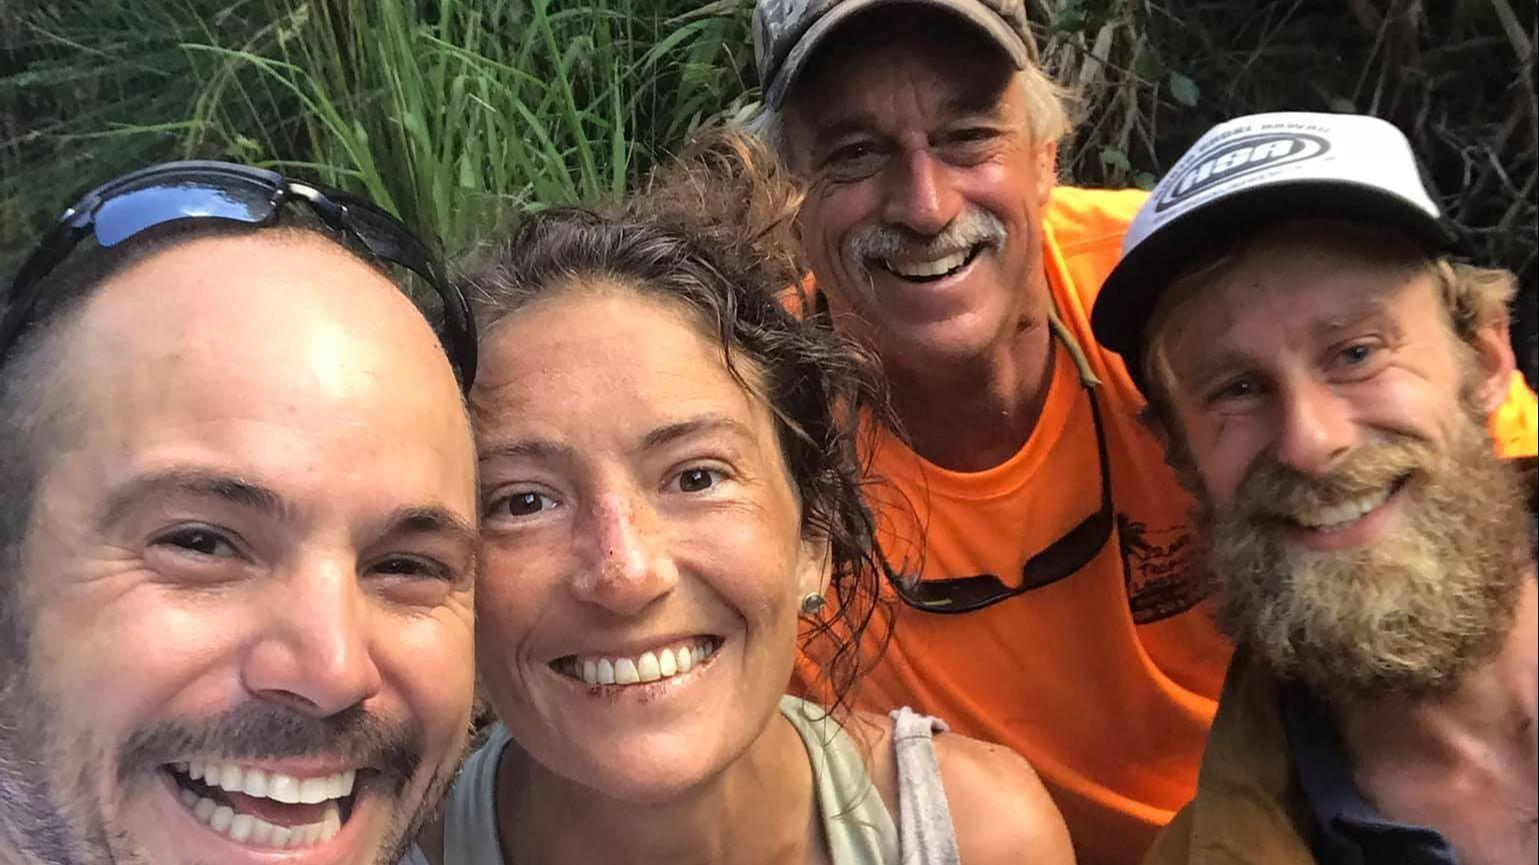 baltimoresun.com - Hawaii woman, who grew up in Maryland, rescued from Maui forest after being missing for two weeks